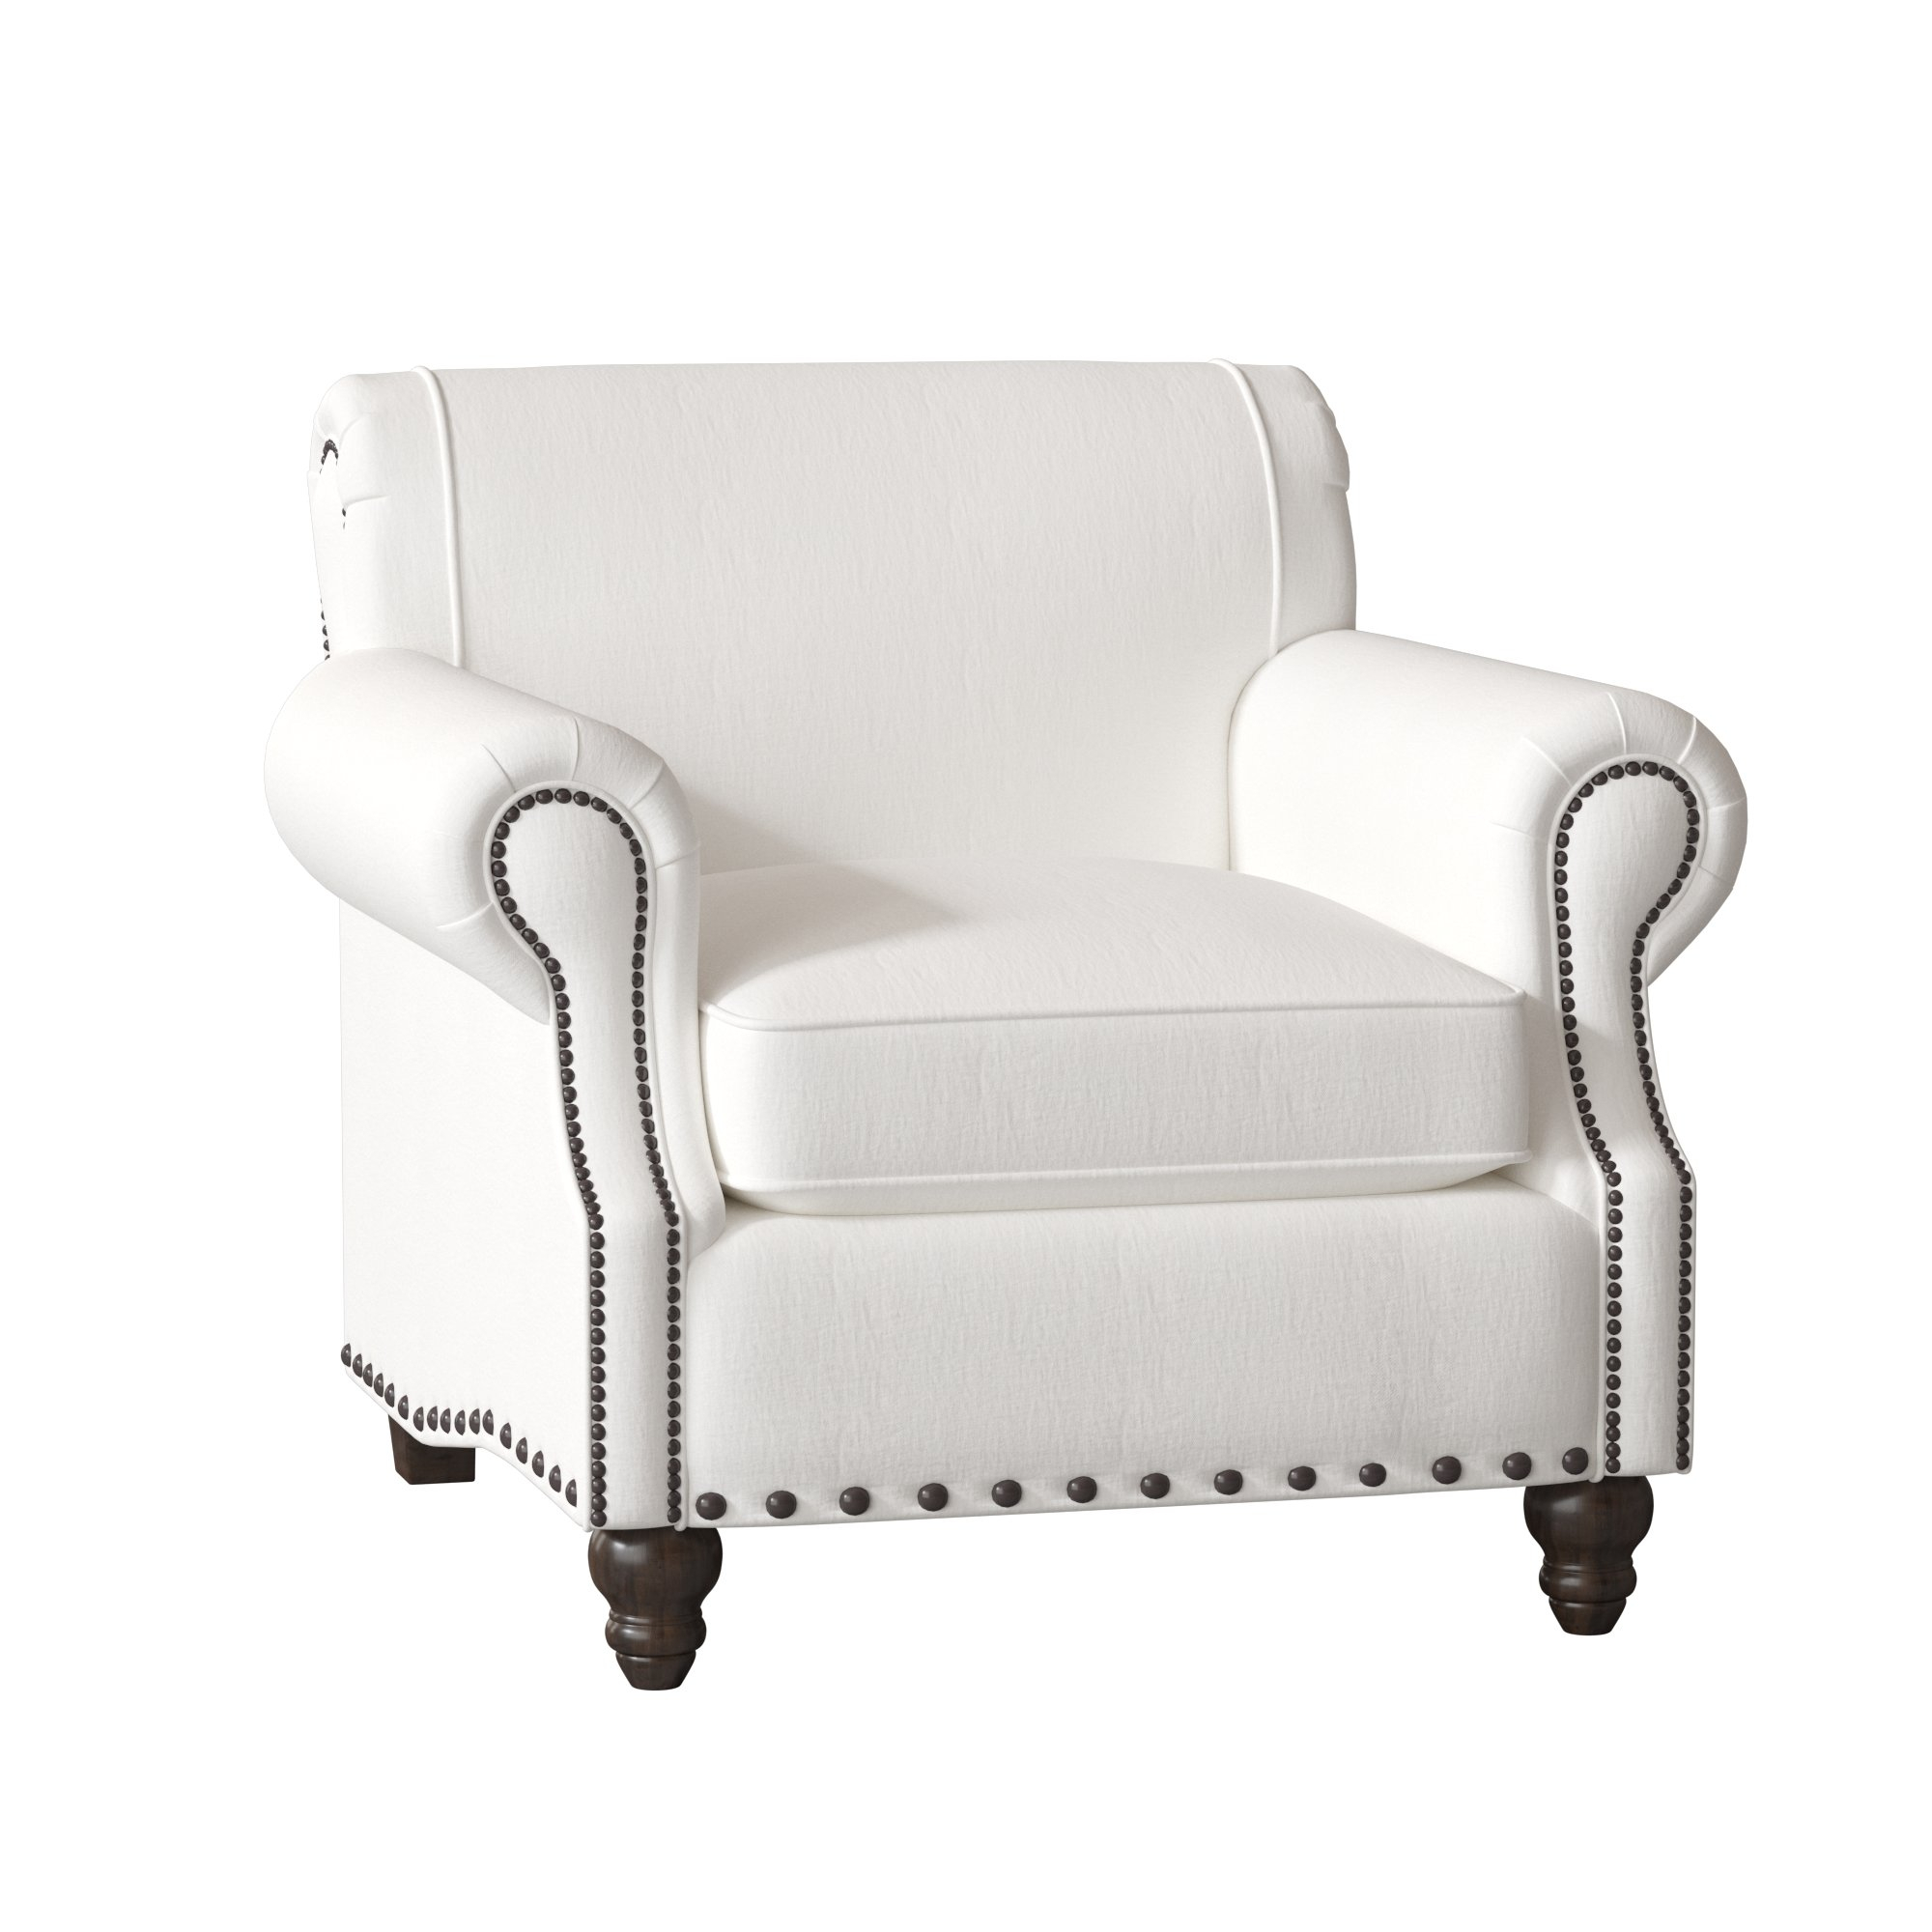 Birch Lane™ Heritage Landry Armchair & Reviews | Birch Lane For Landry Sofa Chairs (Image 7 of 25)